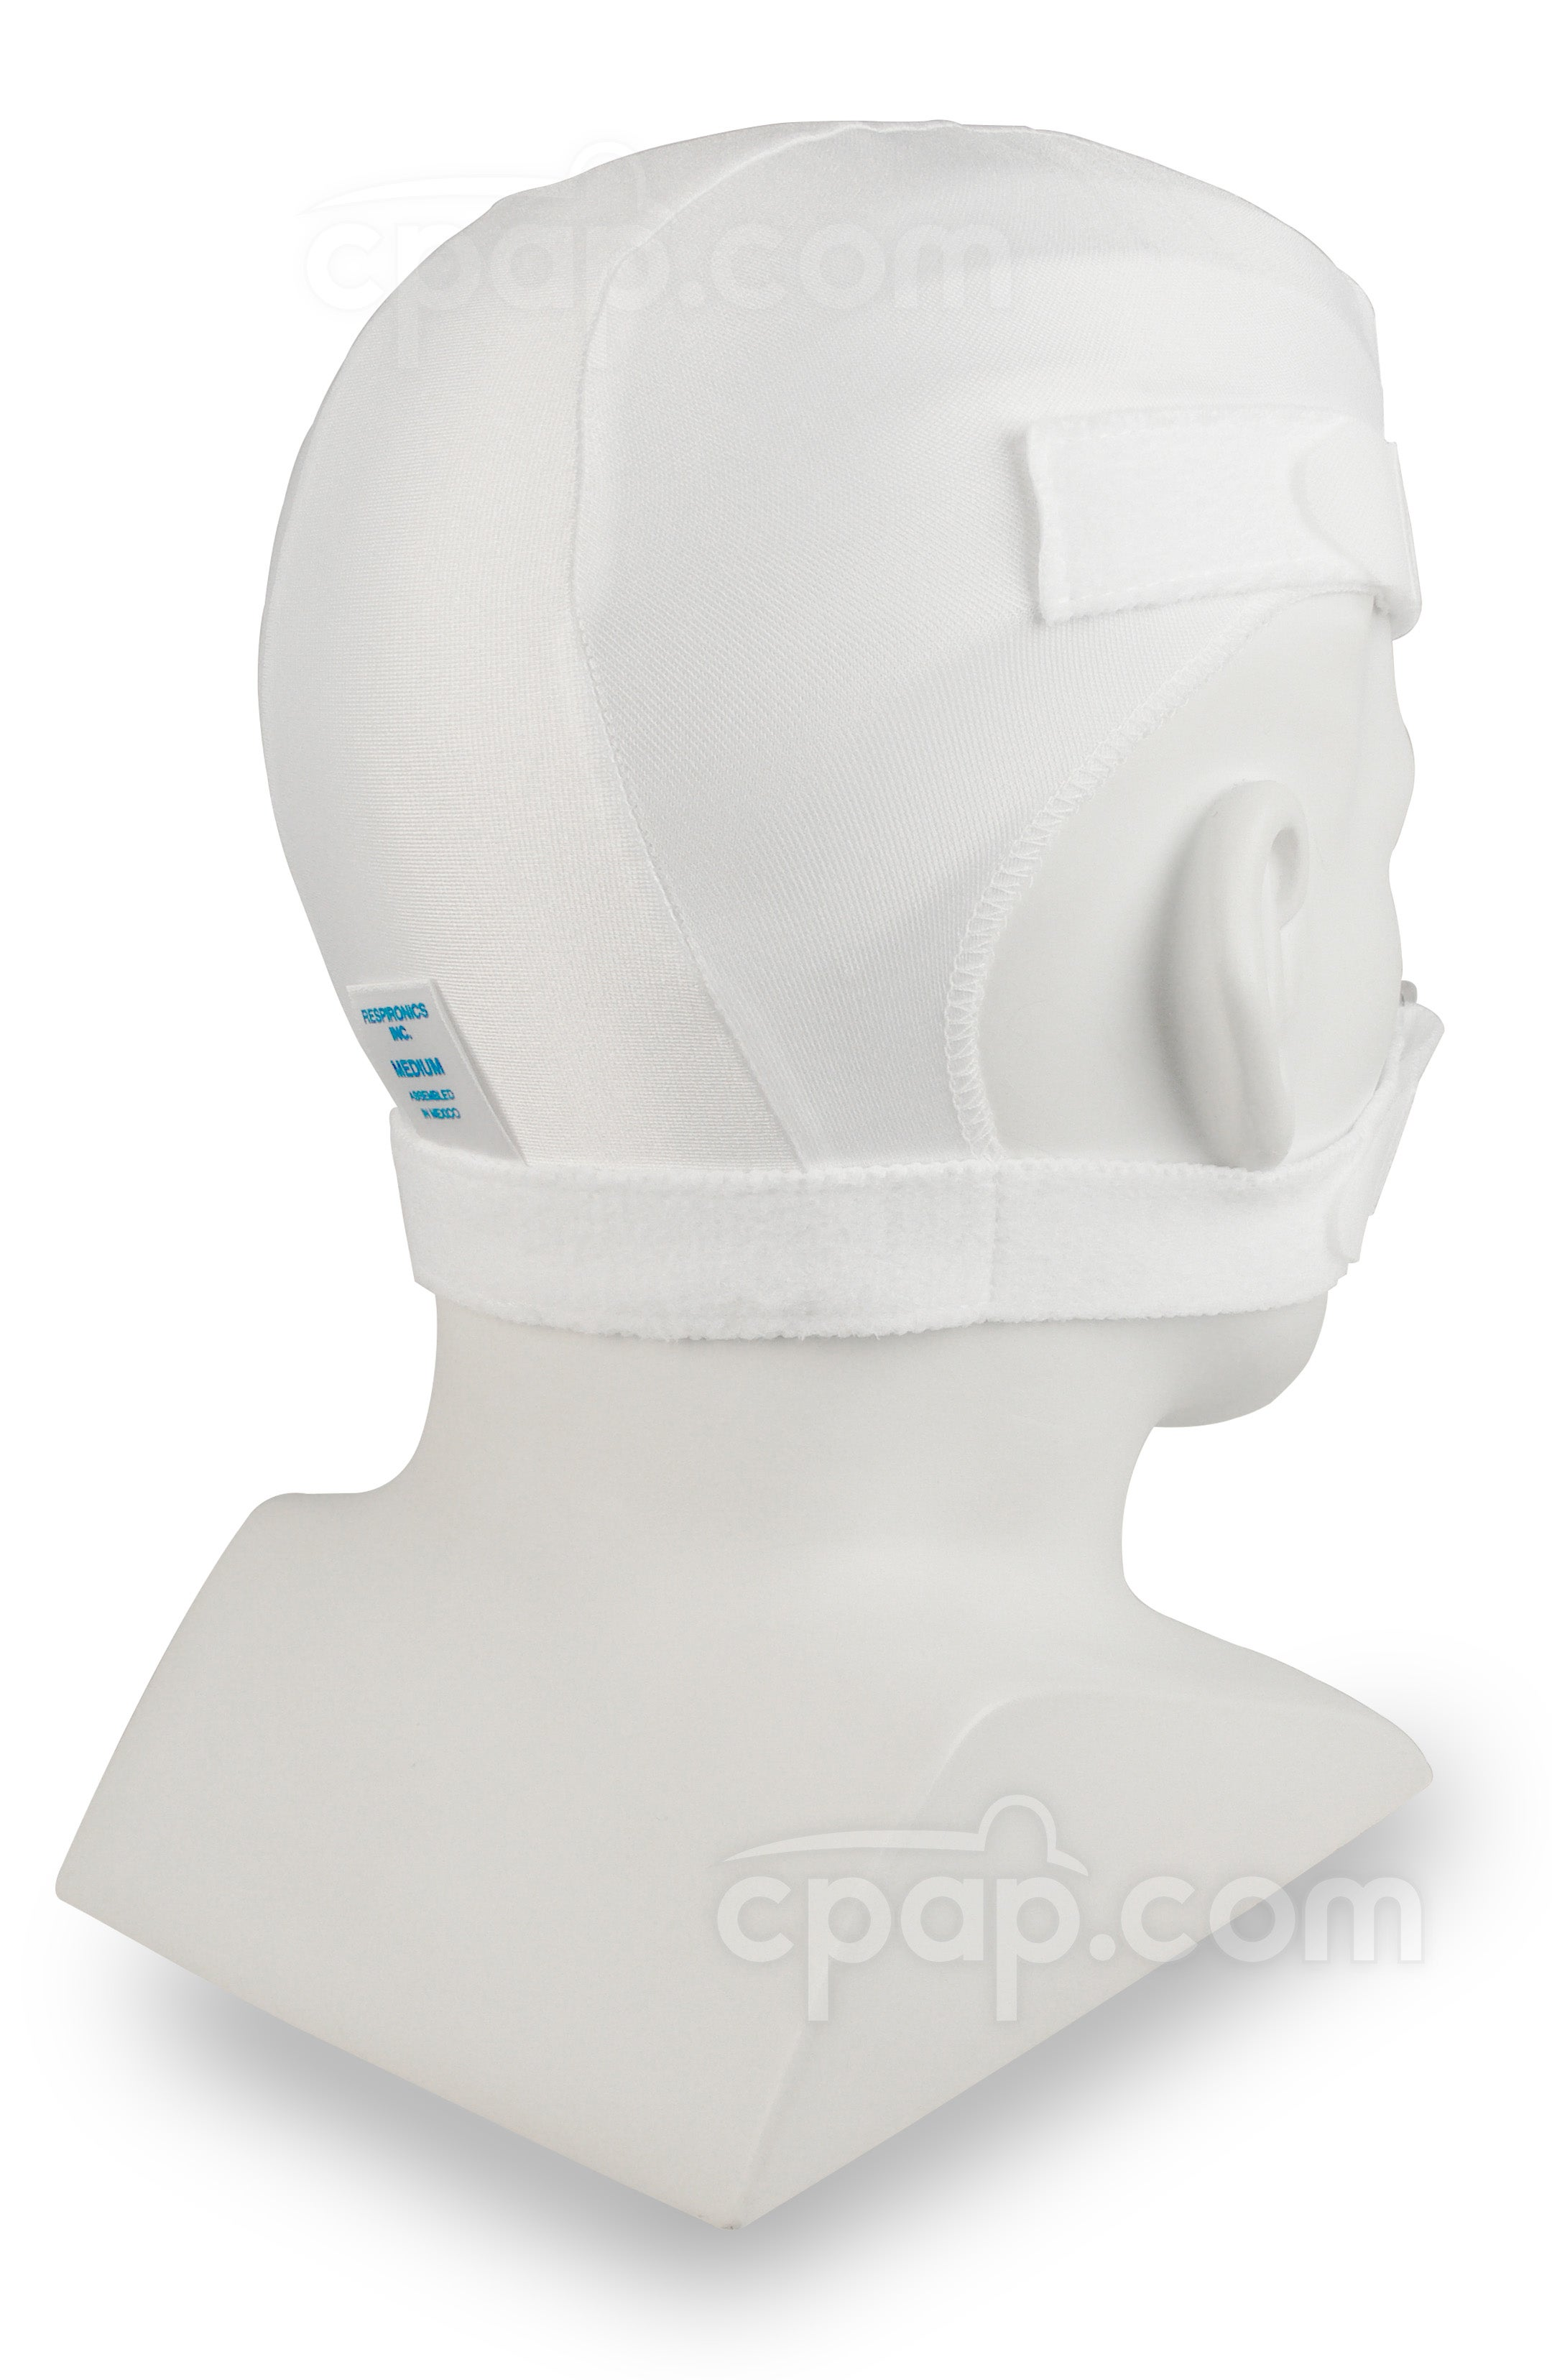 Softcap Headgear White - Angled View (Mannequin Not Included)